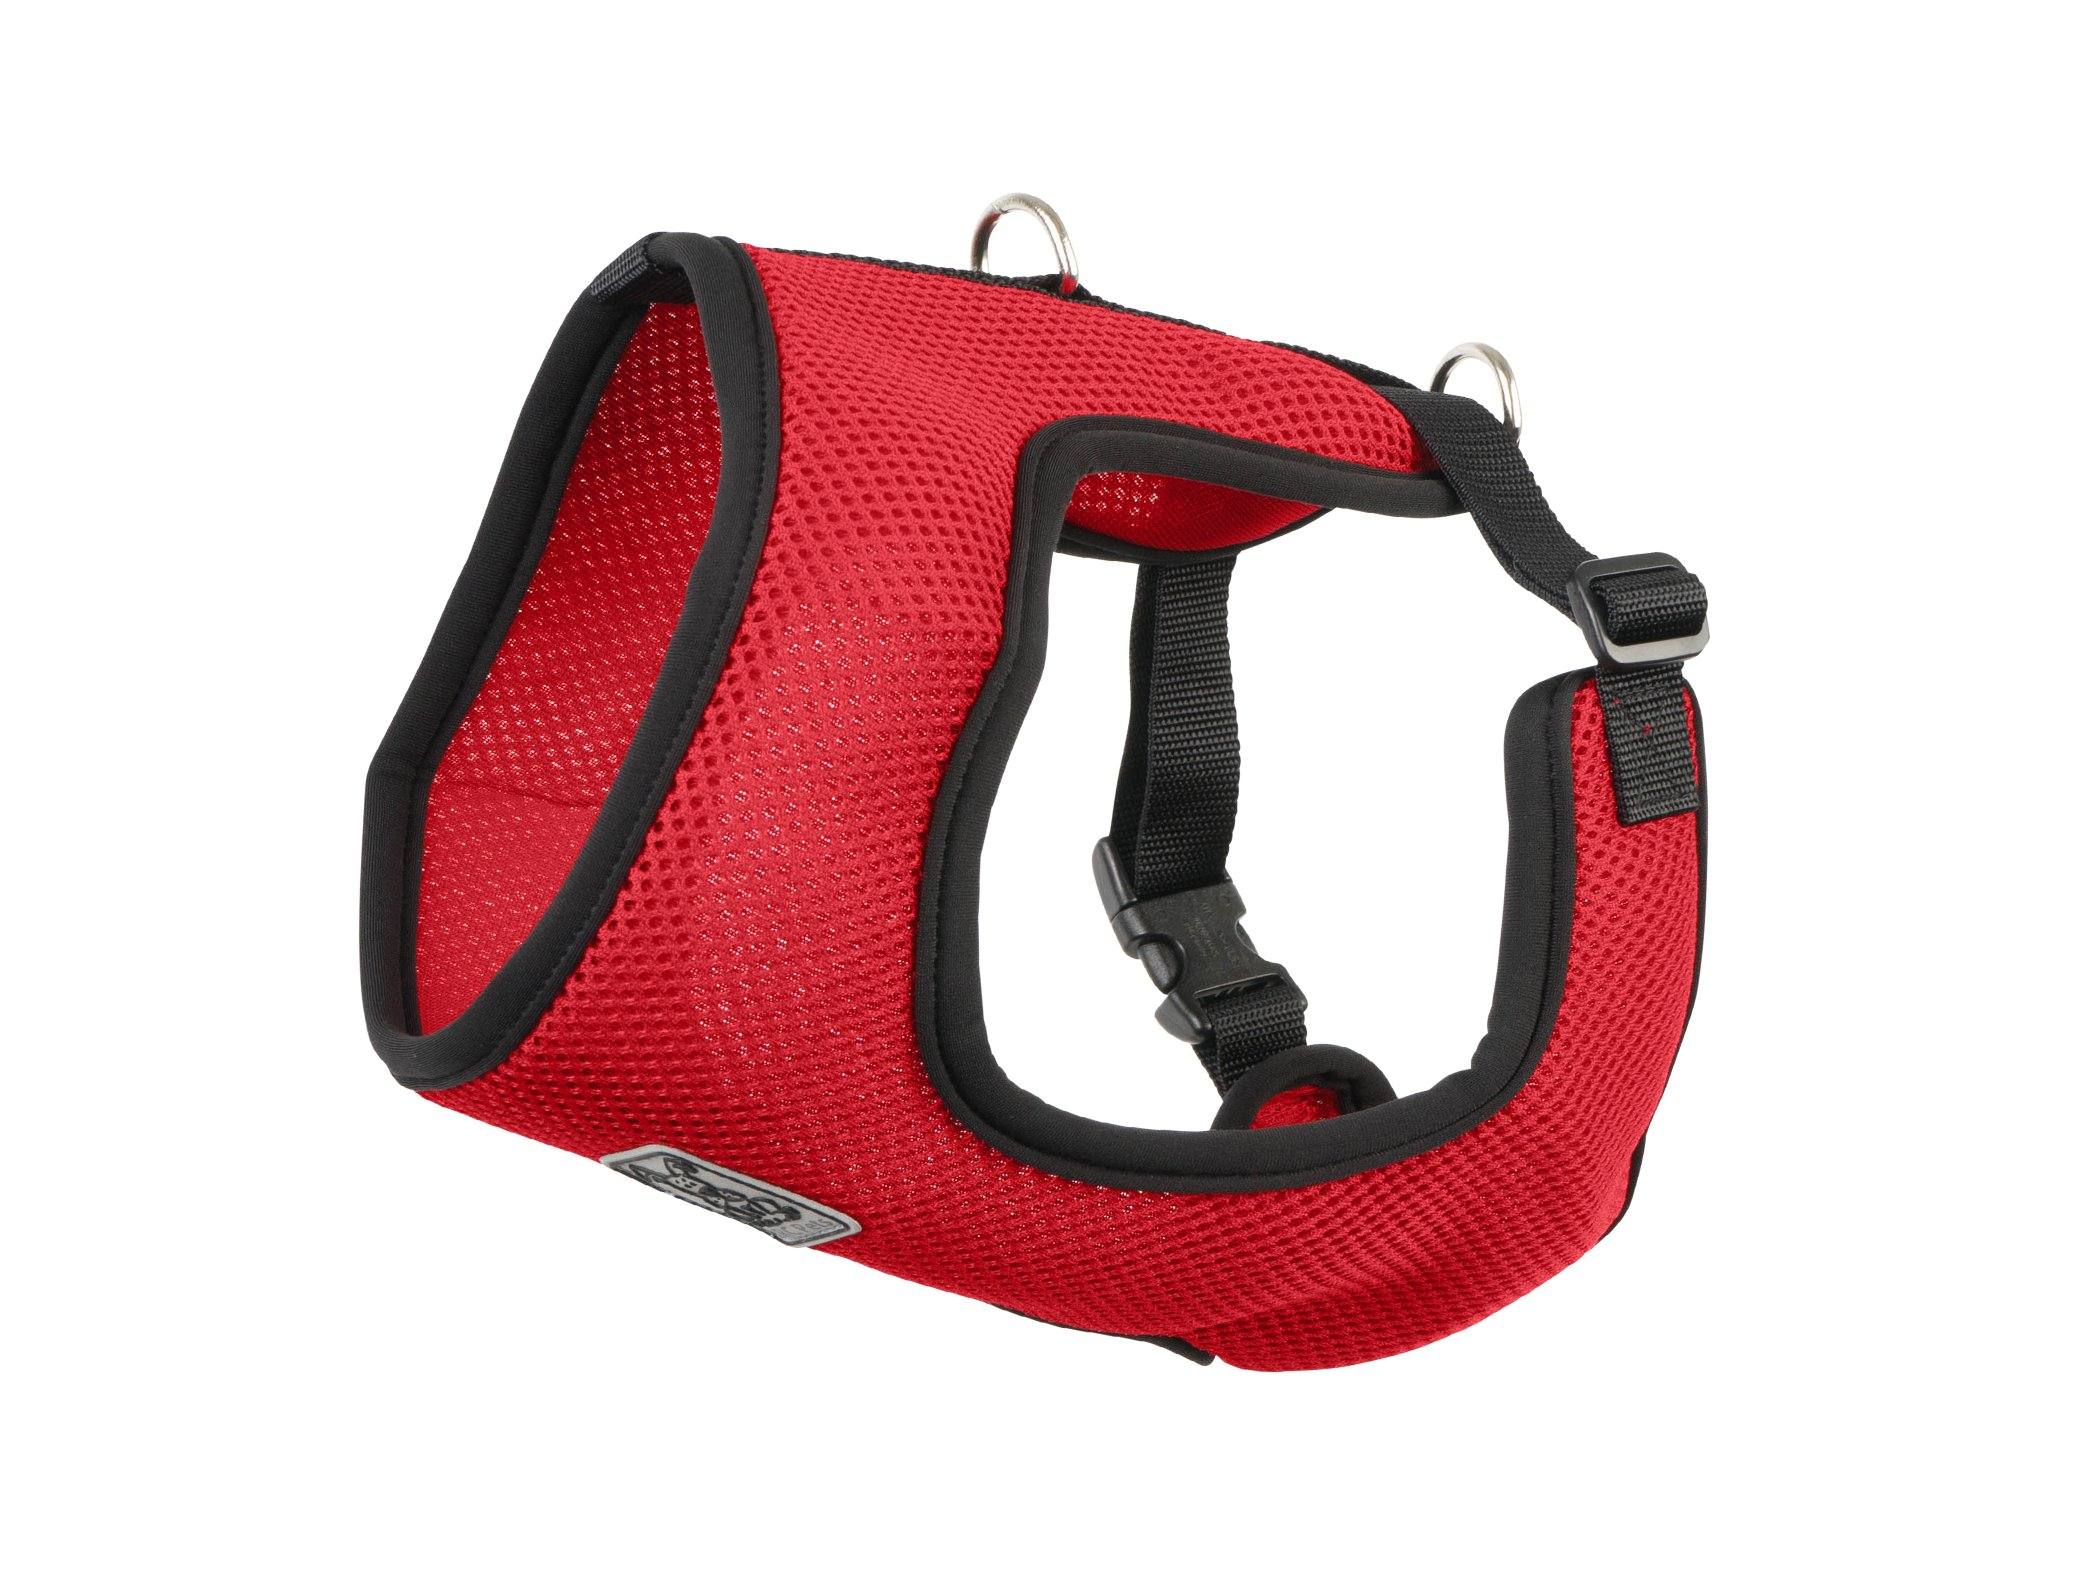 RC Pet Products Cirque Soft Walking Dog Harness, Small, Red